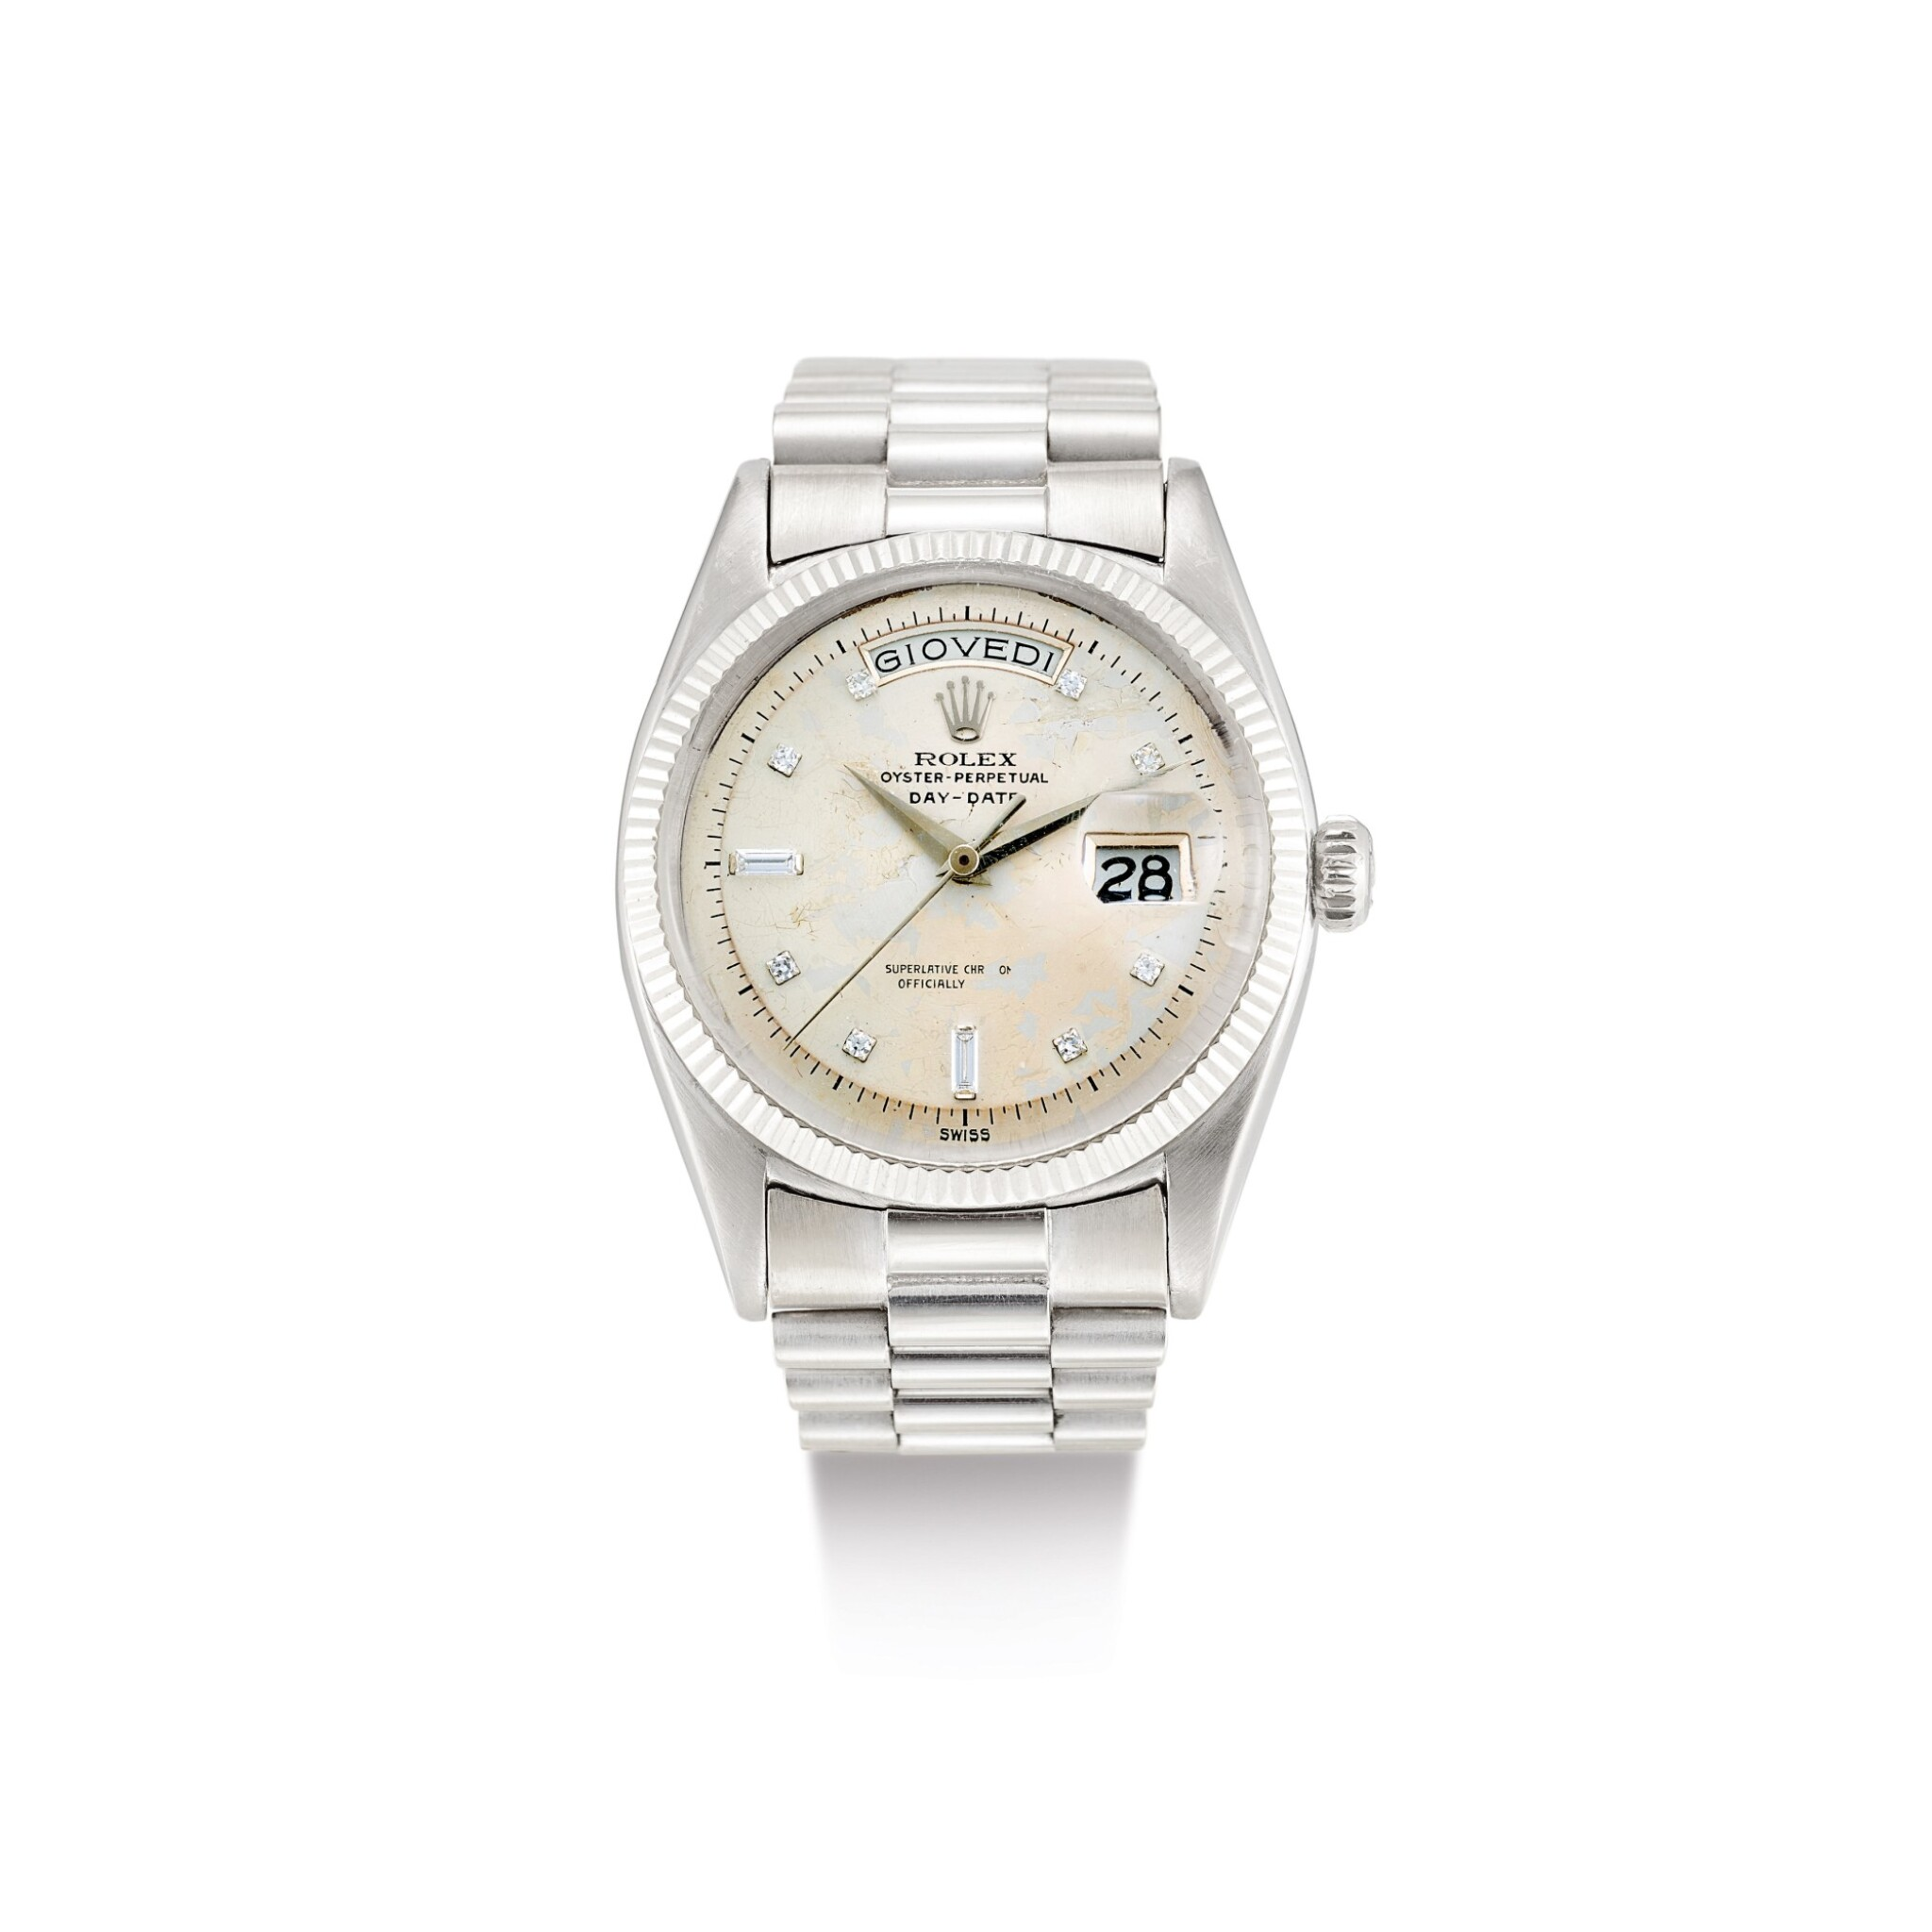 """View full screen - View 1 of Lot 2133. ROLEX   DAY-DATE, REFERENCE 6611B, A WHITE GOLD AND DIAMOND-SET WRISTWATCH WITH DAY, DATE AND BRACELET, CIRCA 1958   勞力士   """"Day-Date 型號6611B 白金鑲鑽石鏈帶腕錶,備日期及星期顯示,錶殼編號401552,約1958年製""""."""